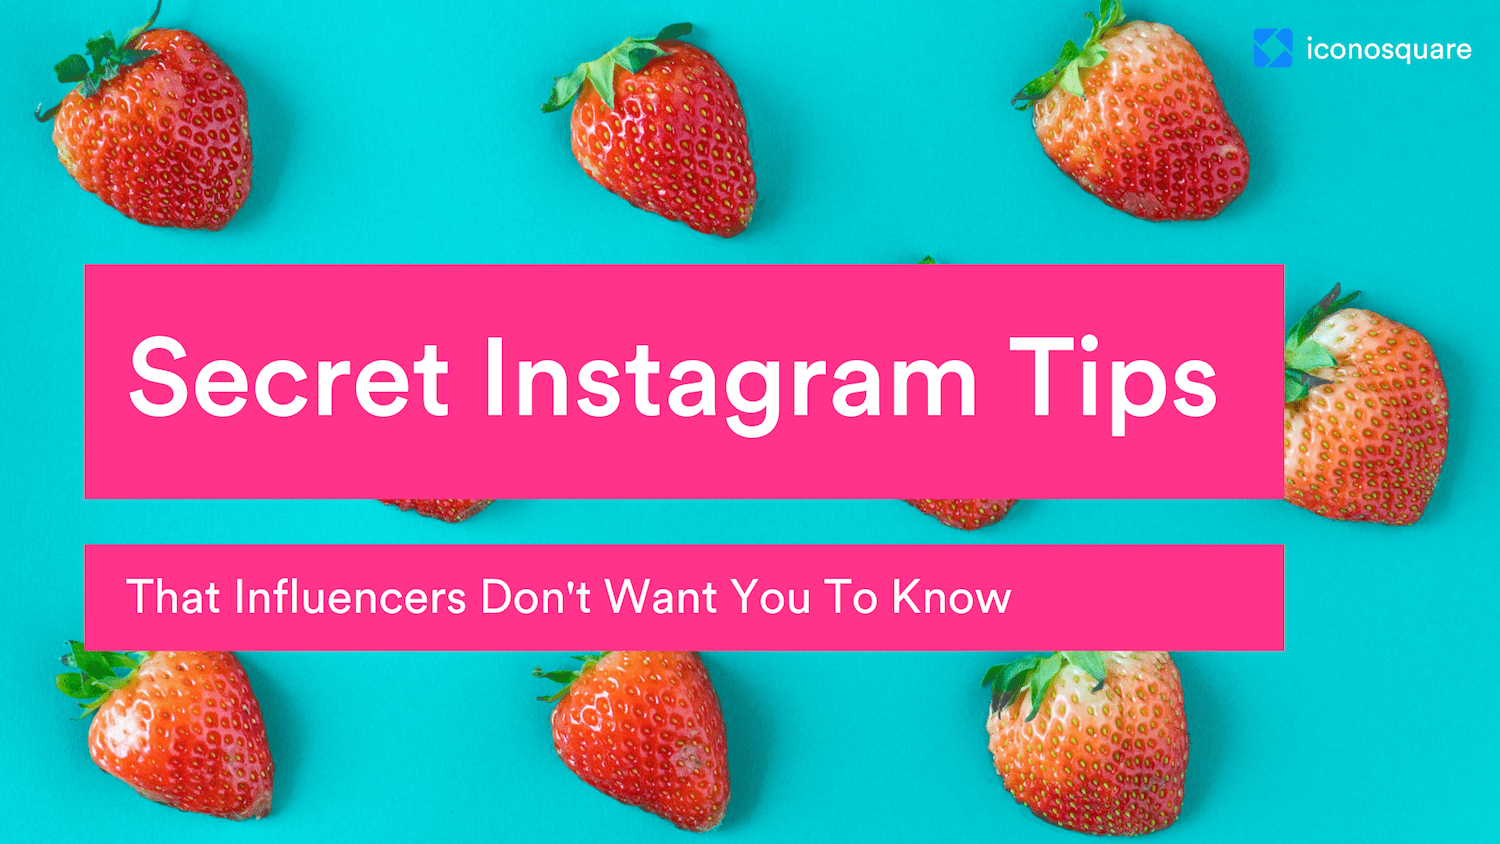 Secret Instagram marketing Tips influencers don't want you to know about